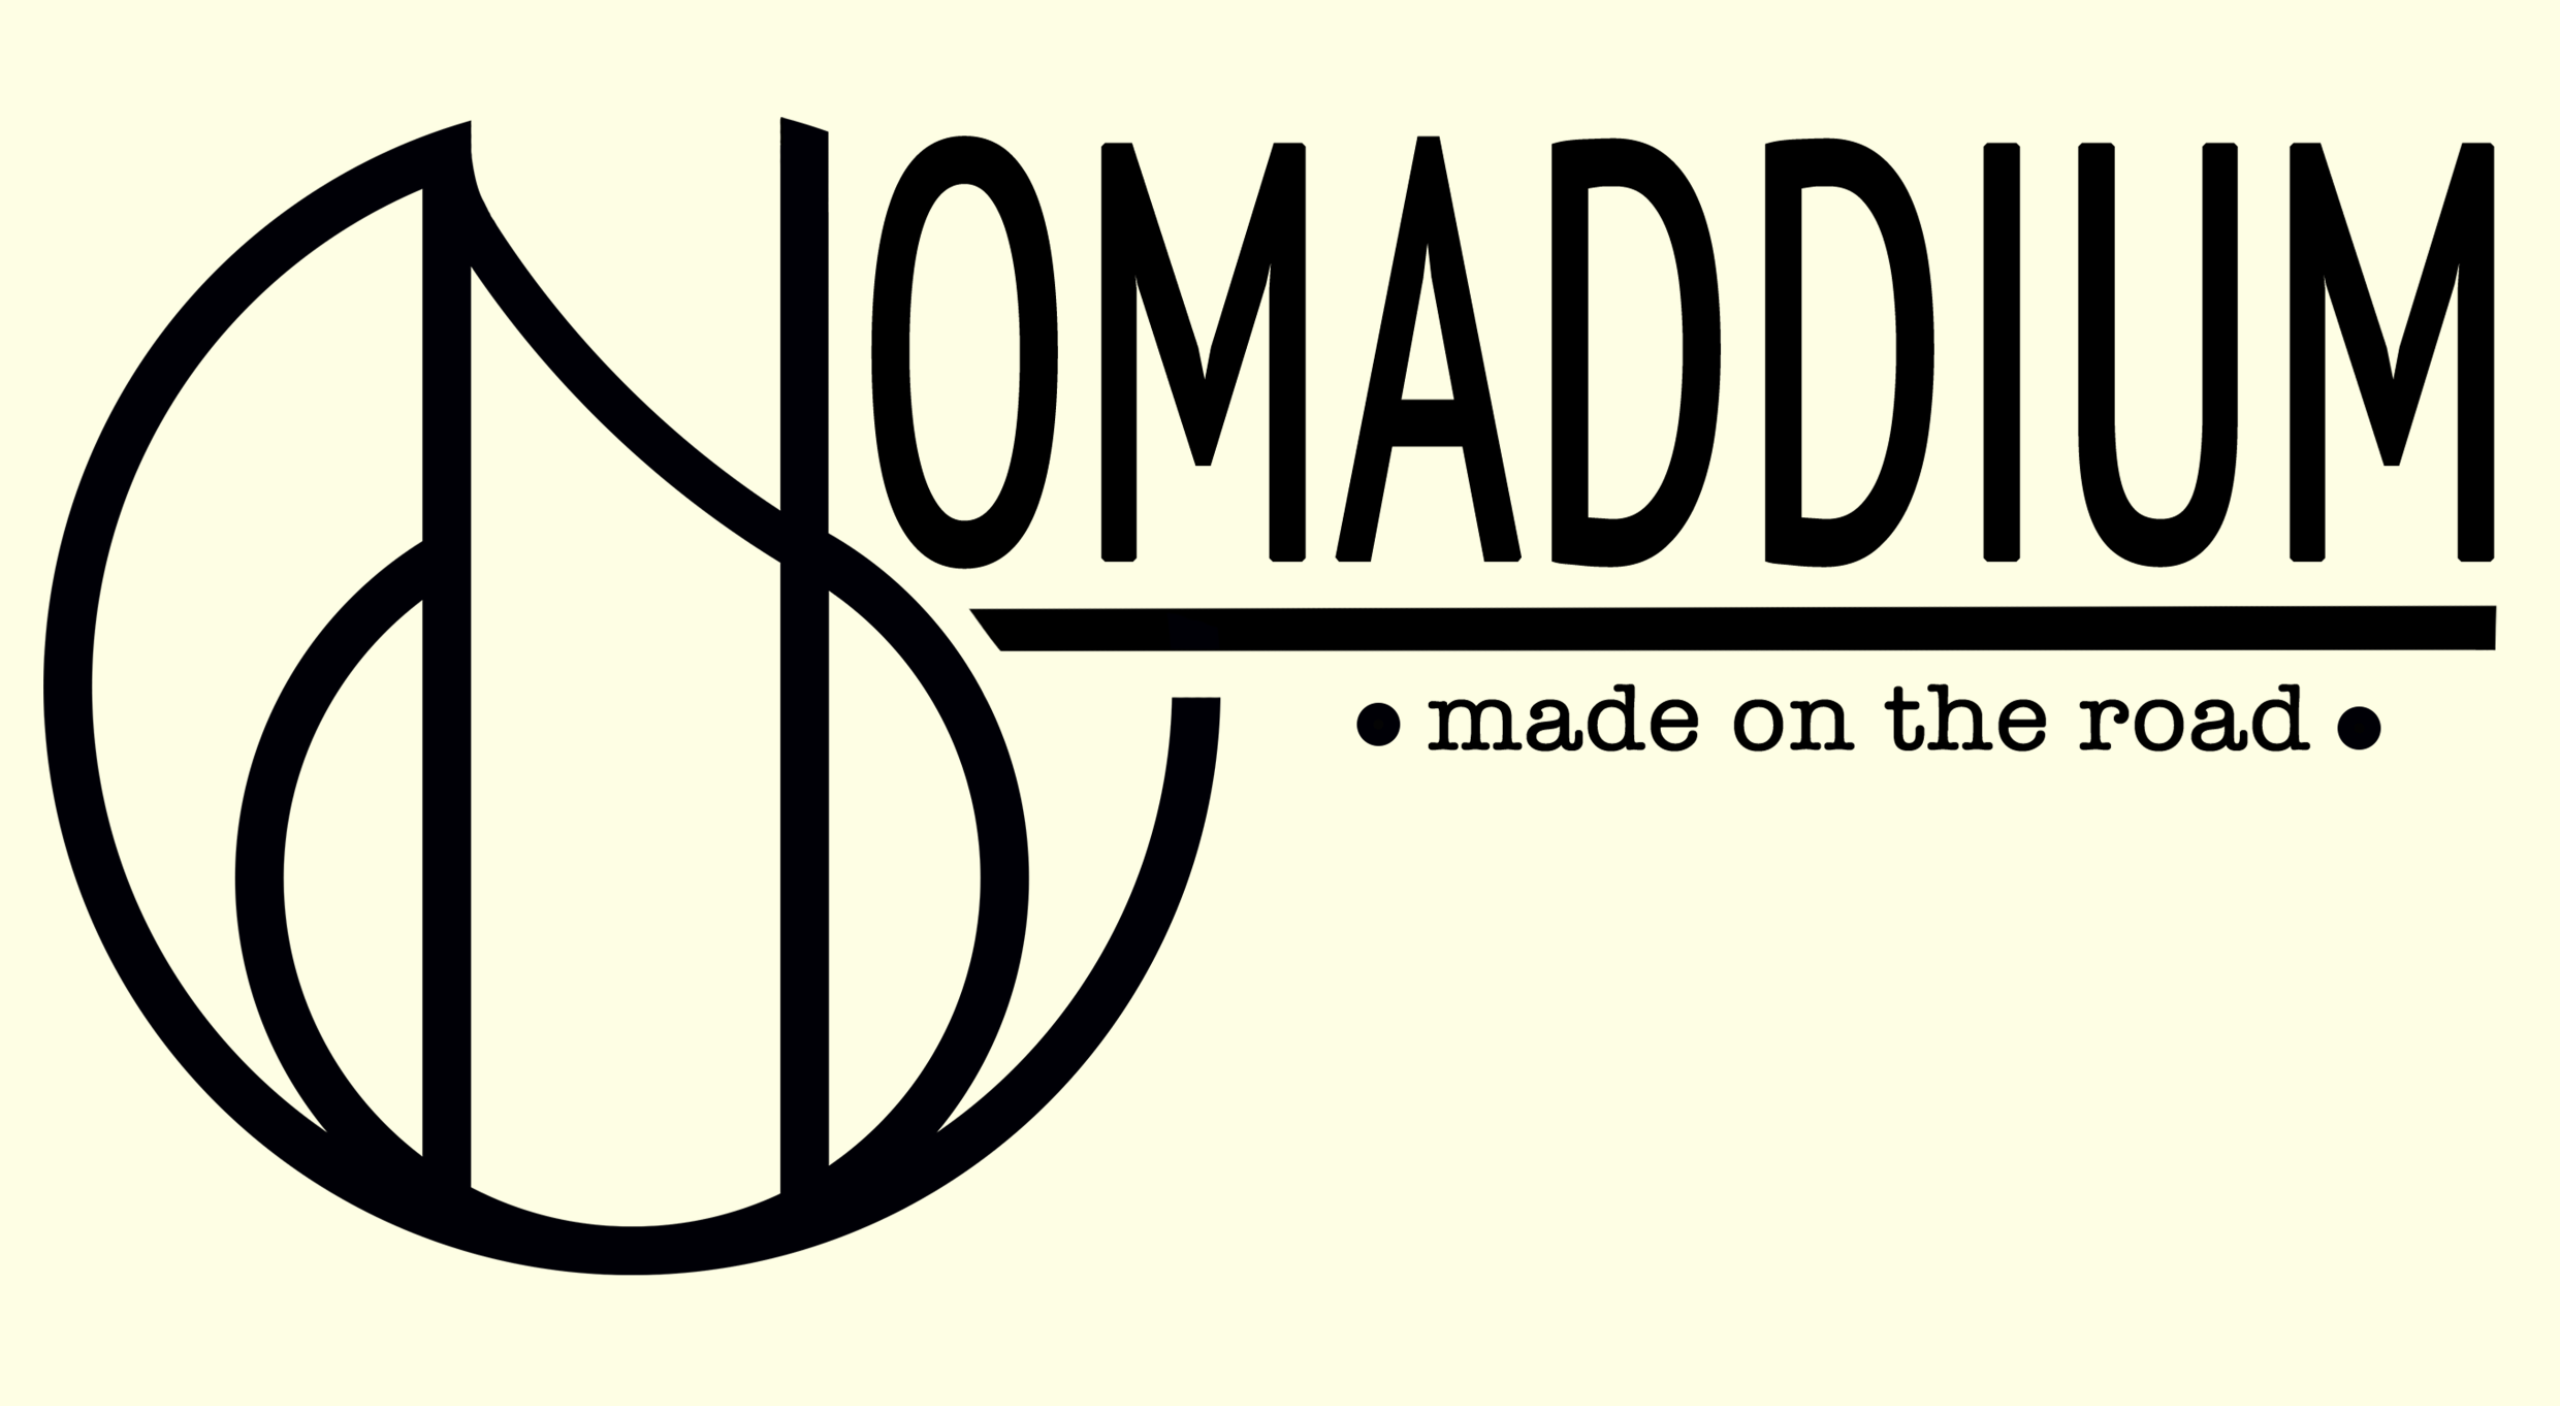 miniature Wordpress from scratch Nomaddium